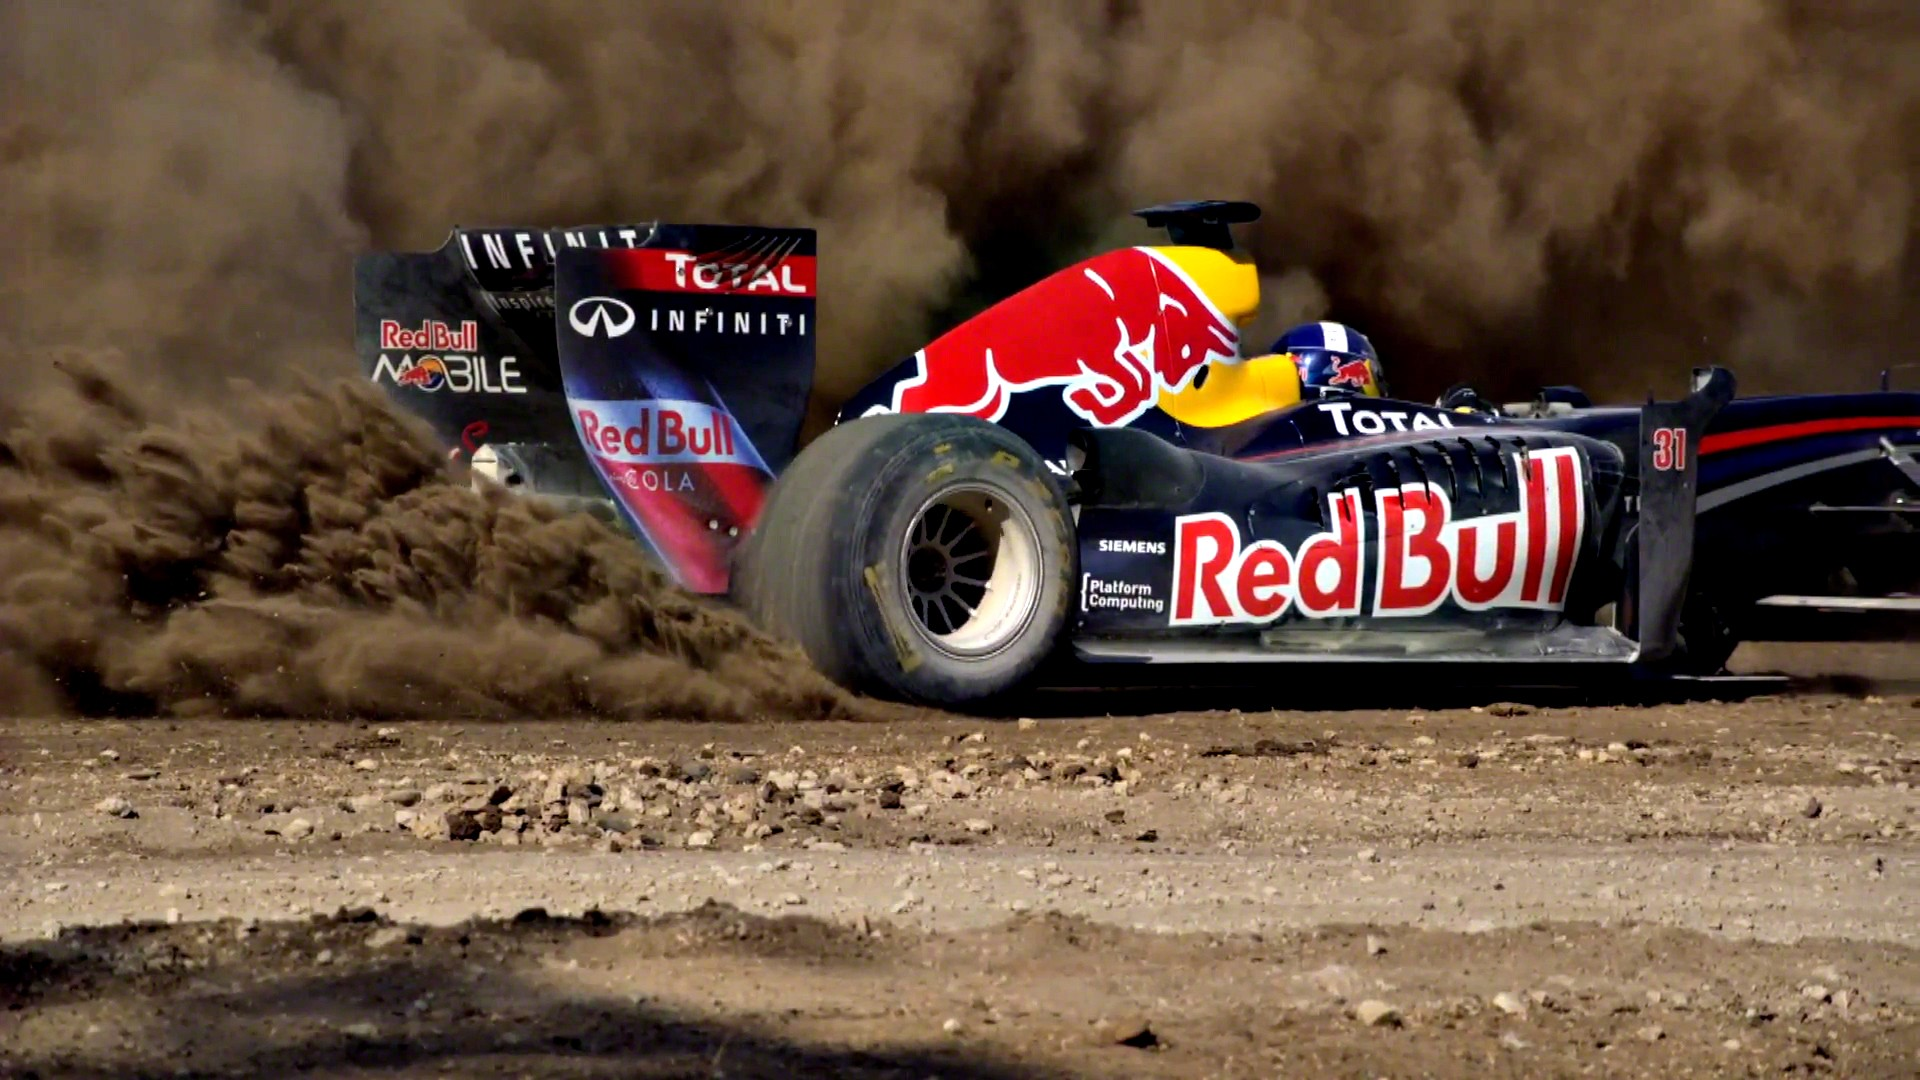 One Red Bull Racing David Coulthard hd wallpaper   HD Wallpapers 1920x1080